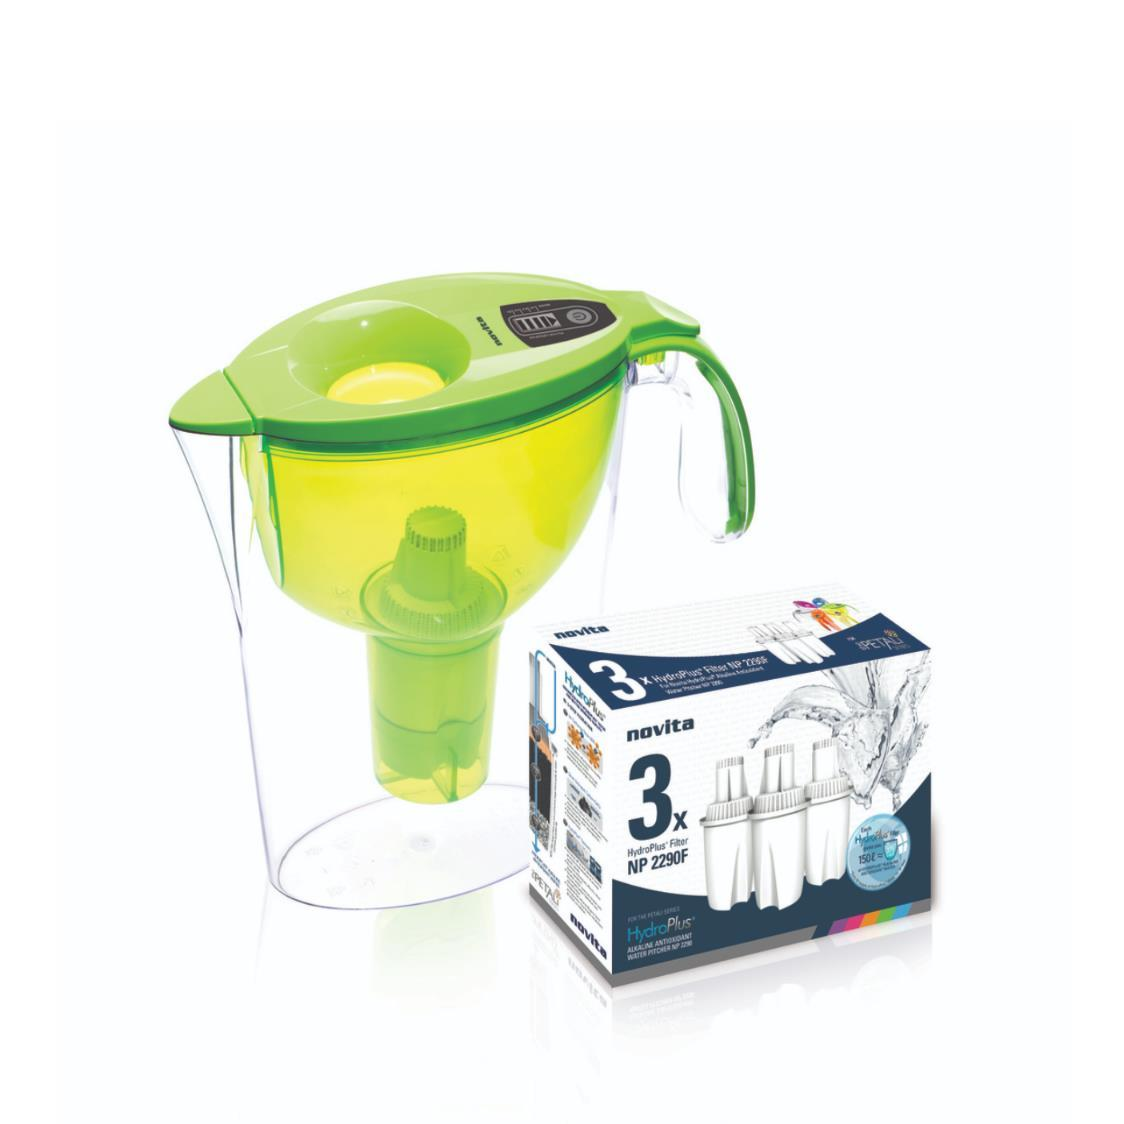 Petali Series HydroPlus Water Pitcher NP2290 Bundle Green